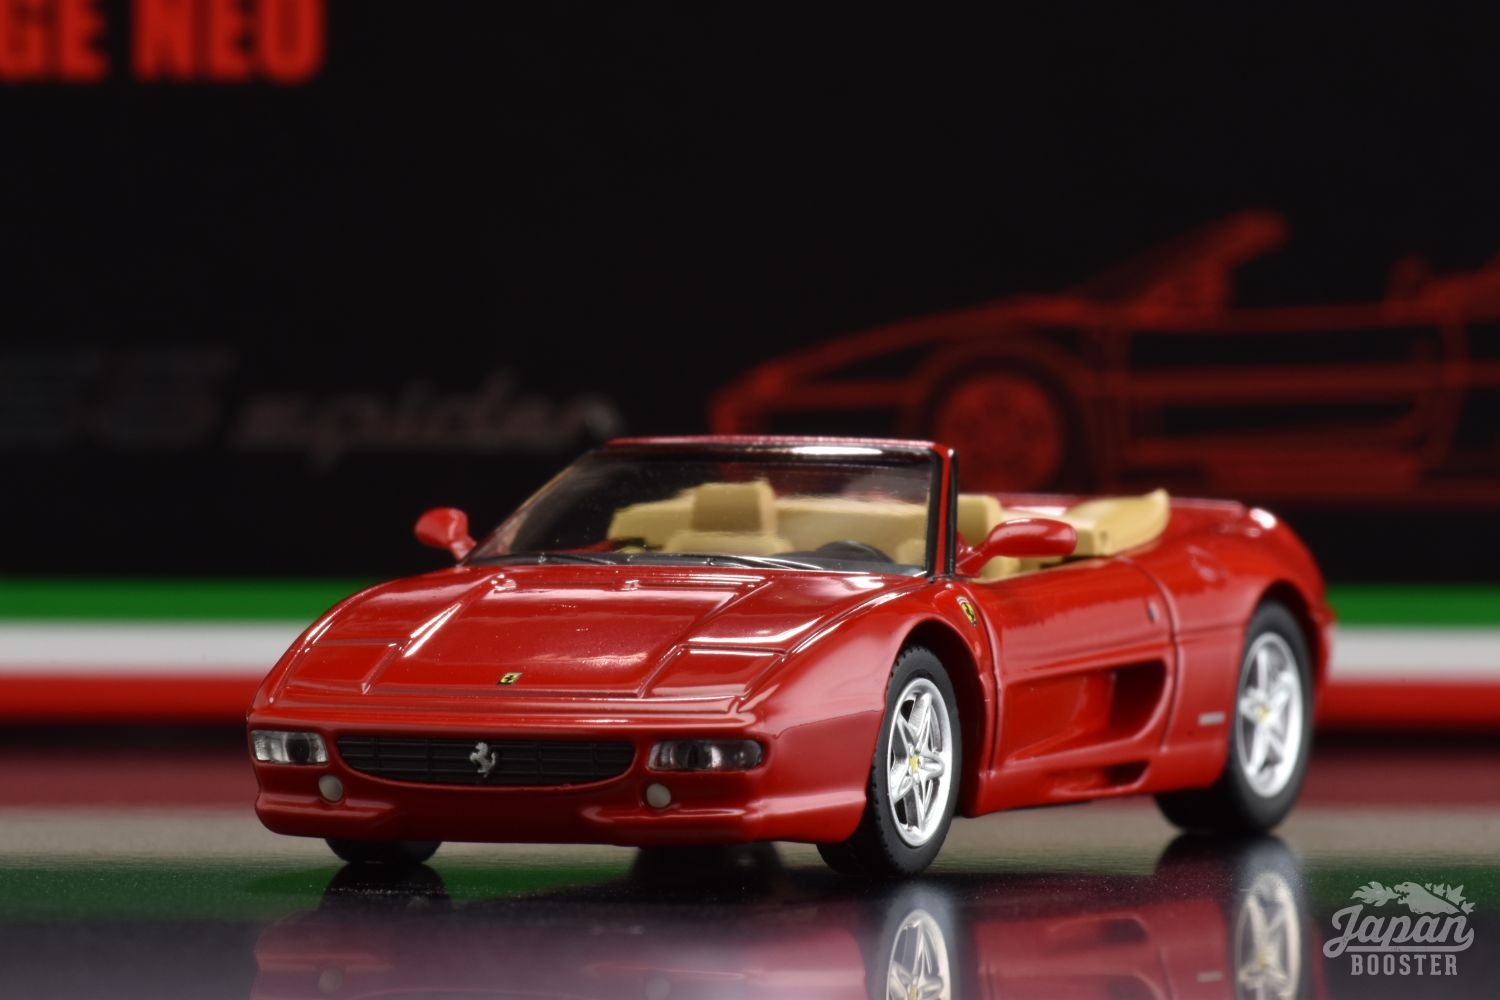 LV-FERRARI F355 SPIDER RED